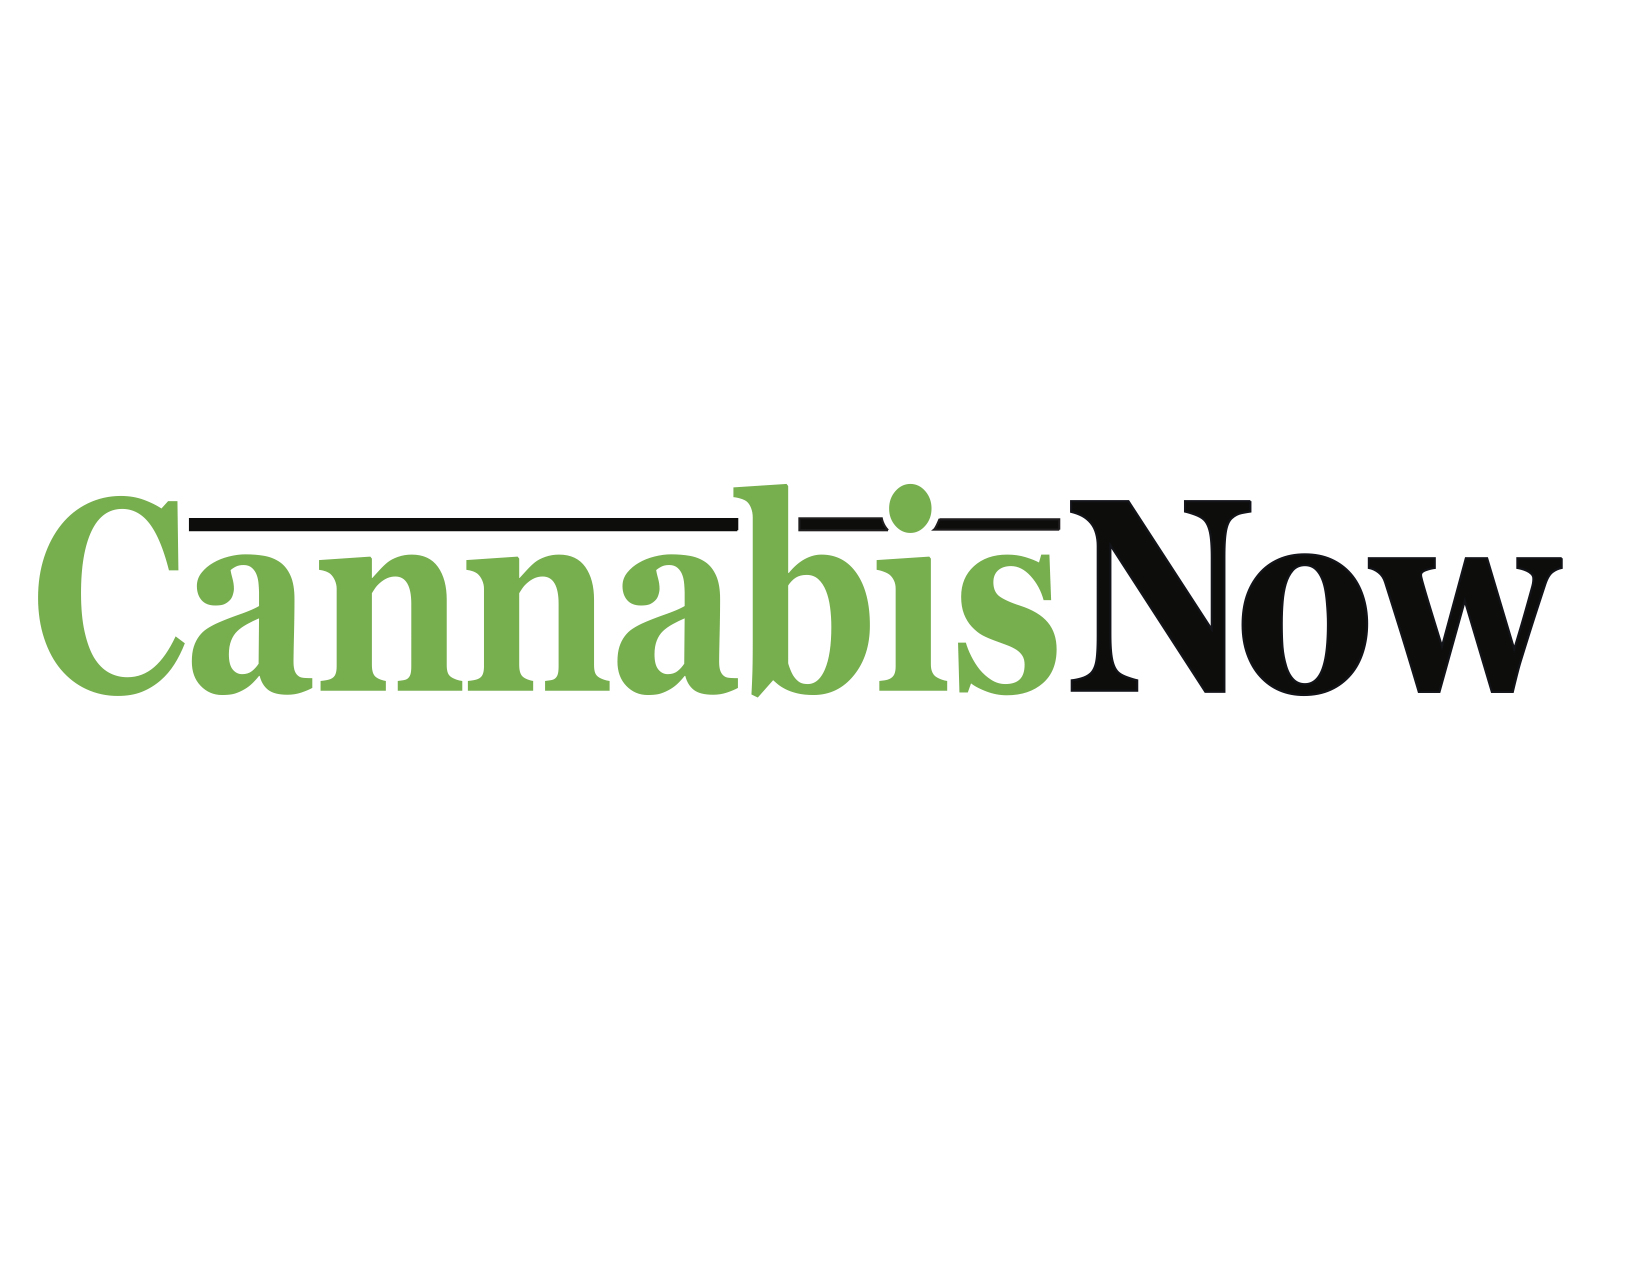 CannabisNow-green-black-logo.jpg